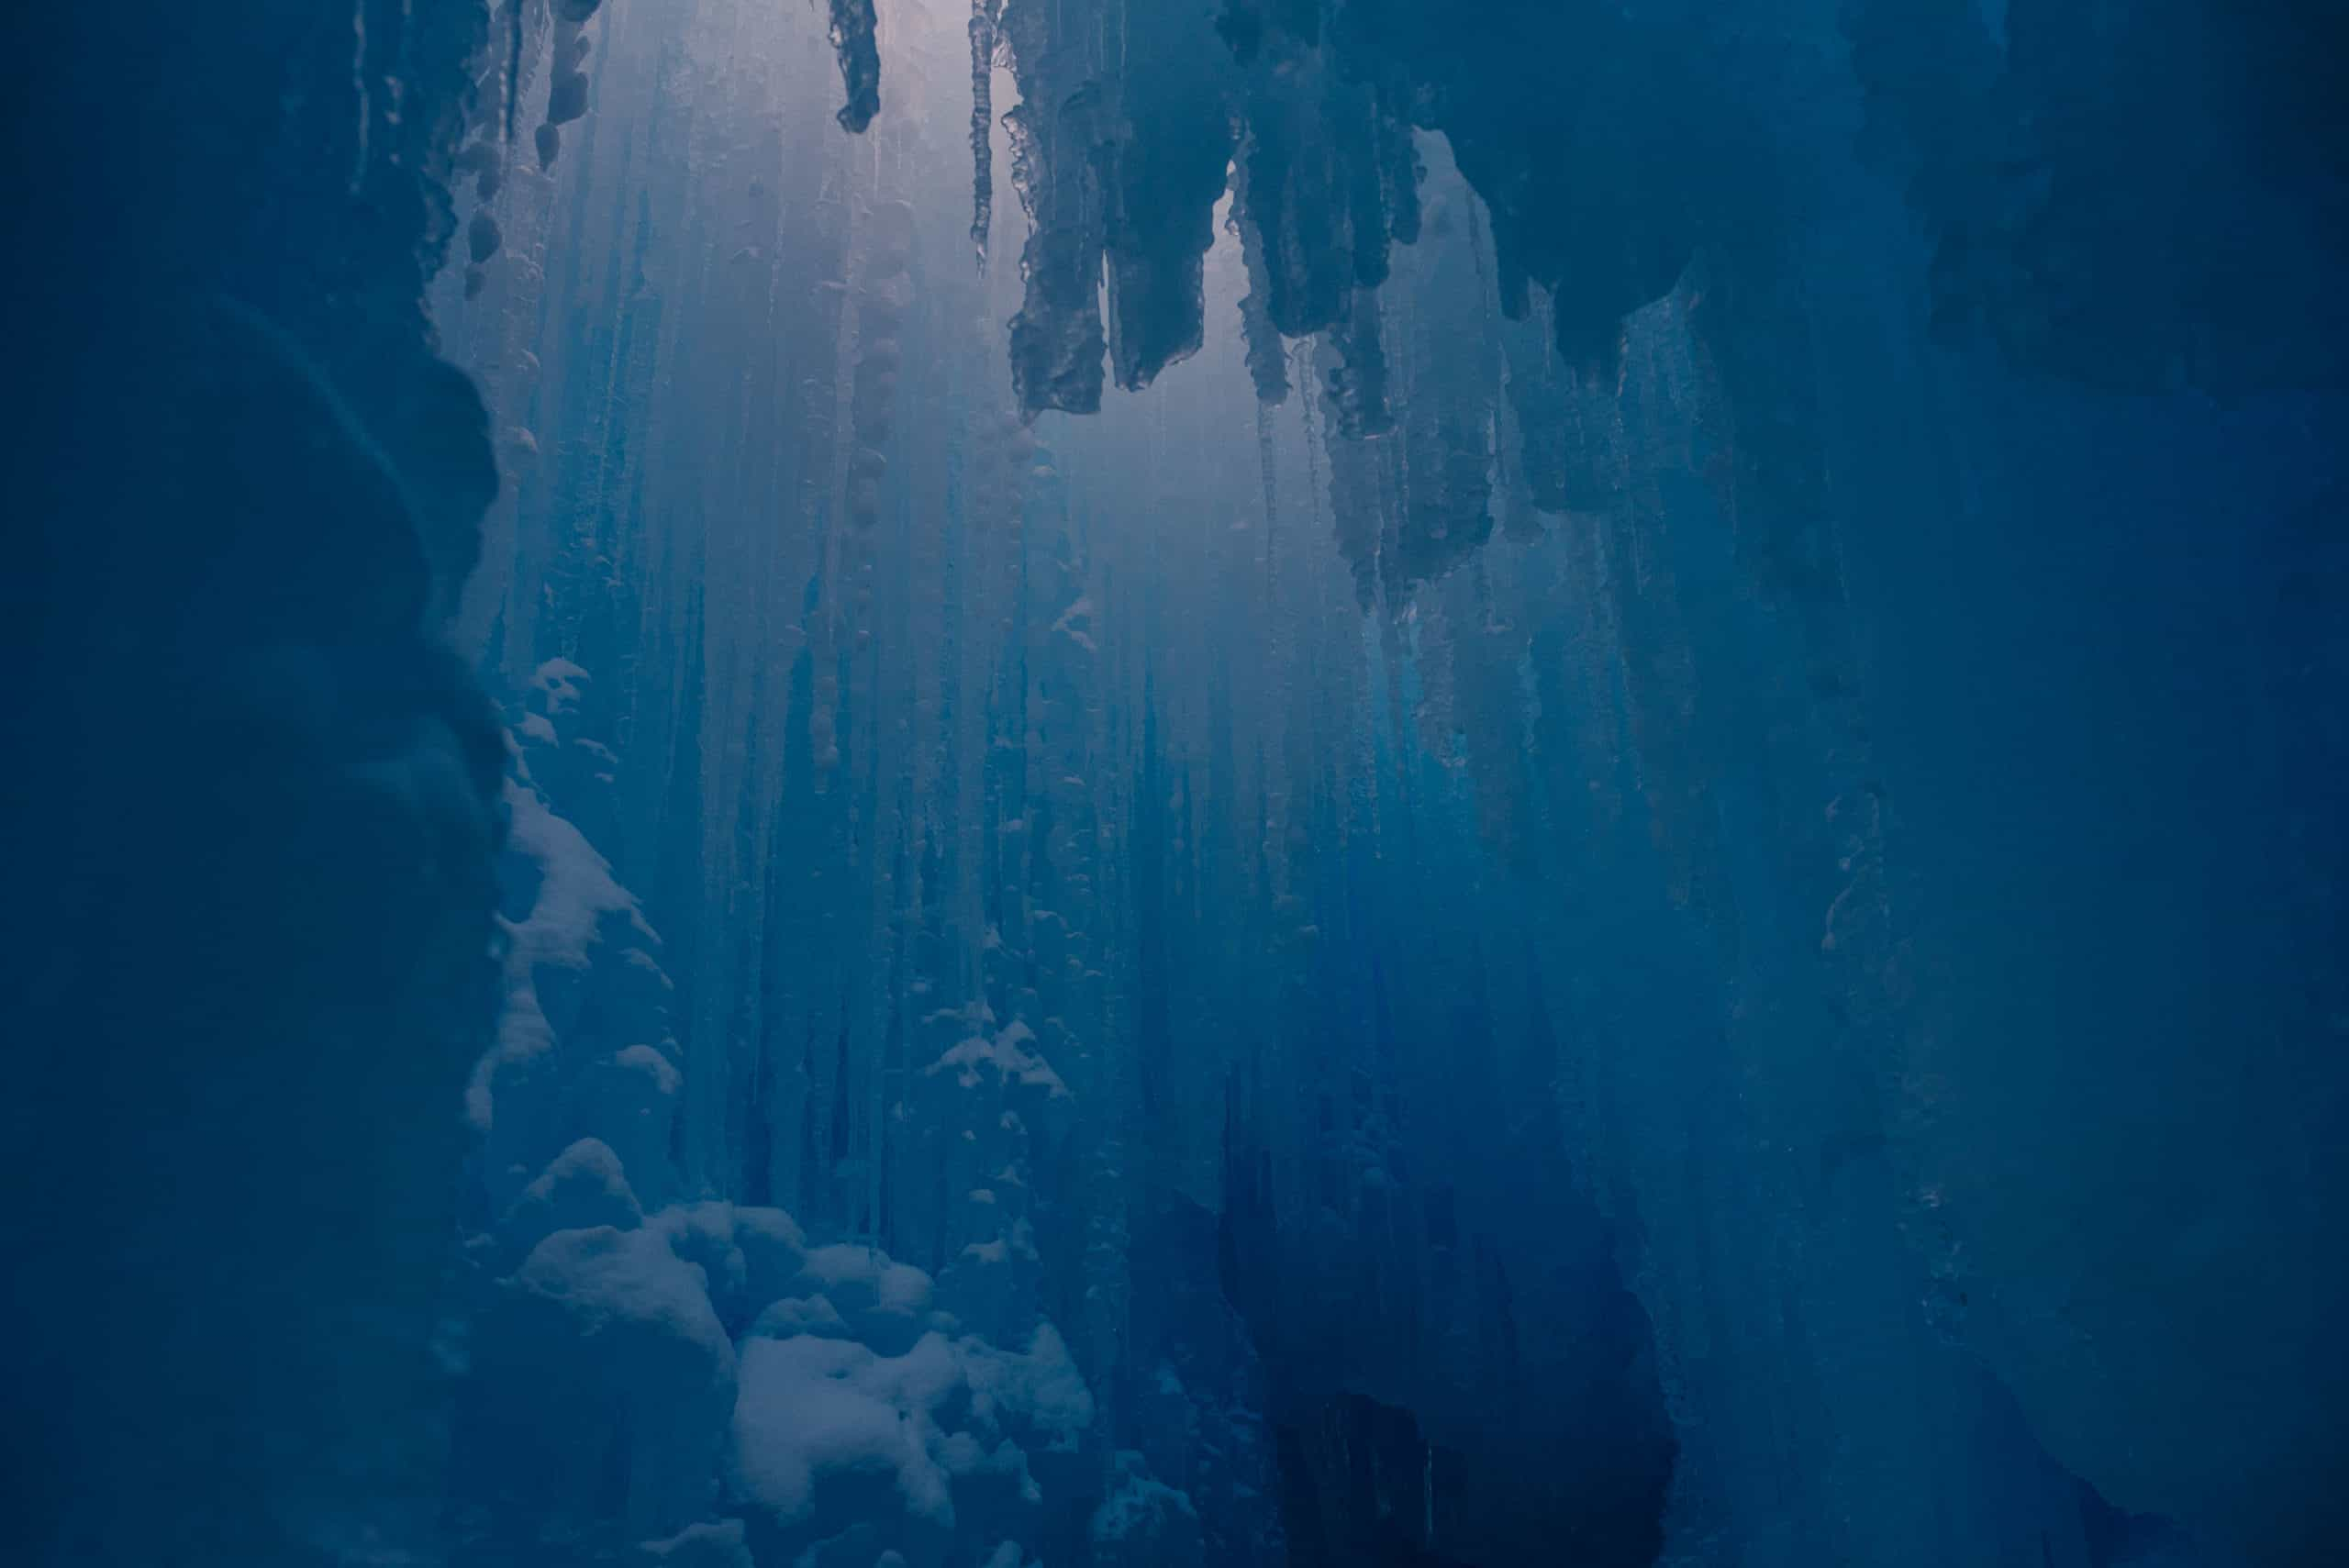 view of the ice castles with the light glowing through